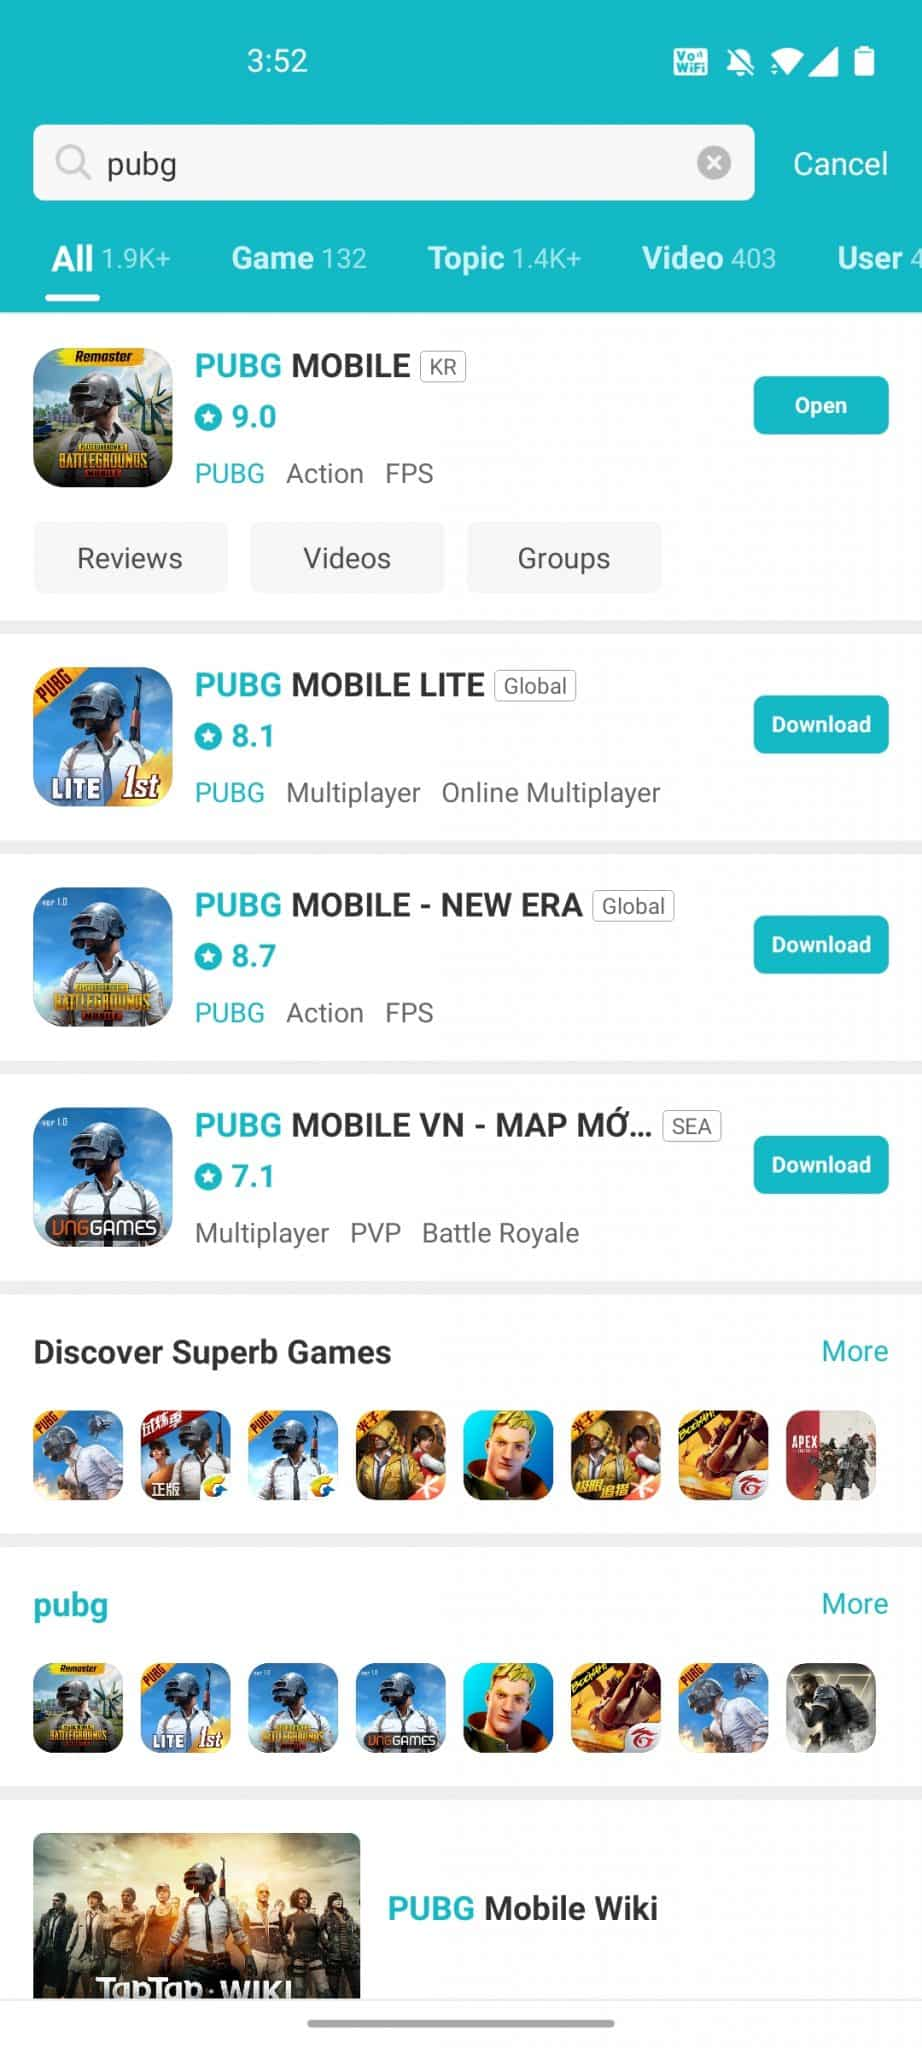 How to download PUBG Mobile Korean version on Android